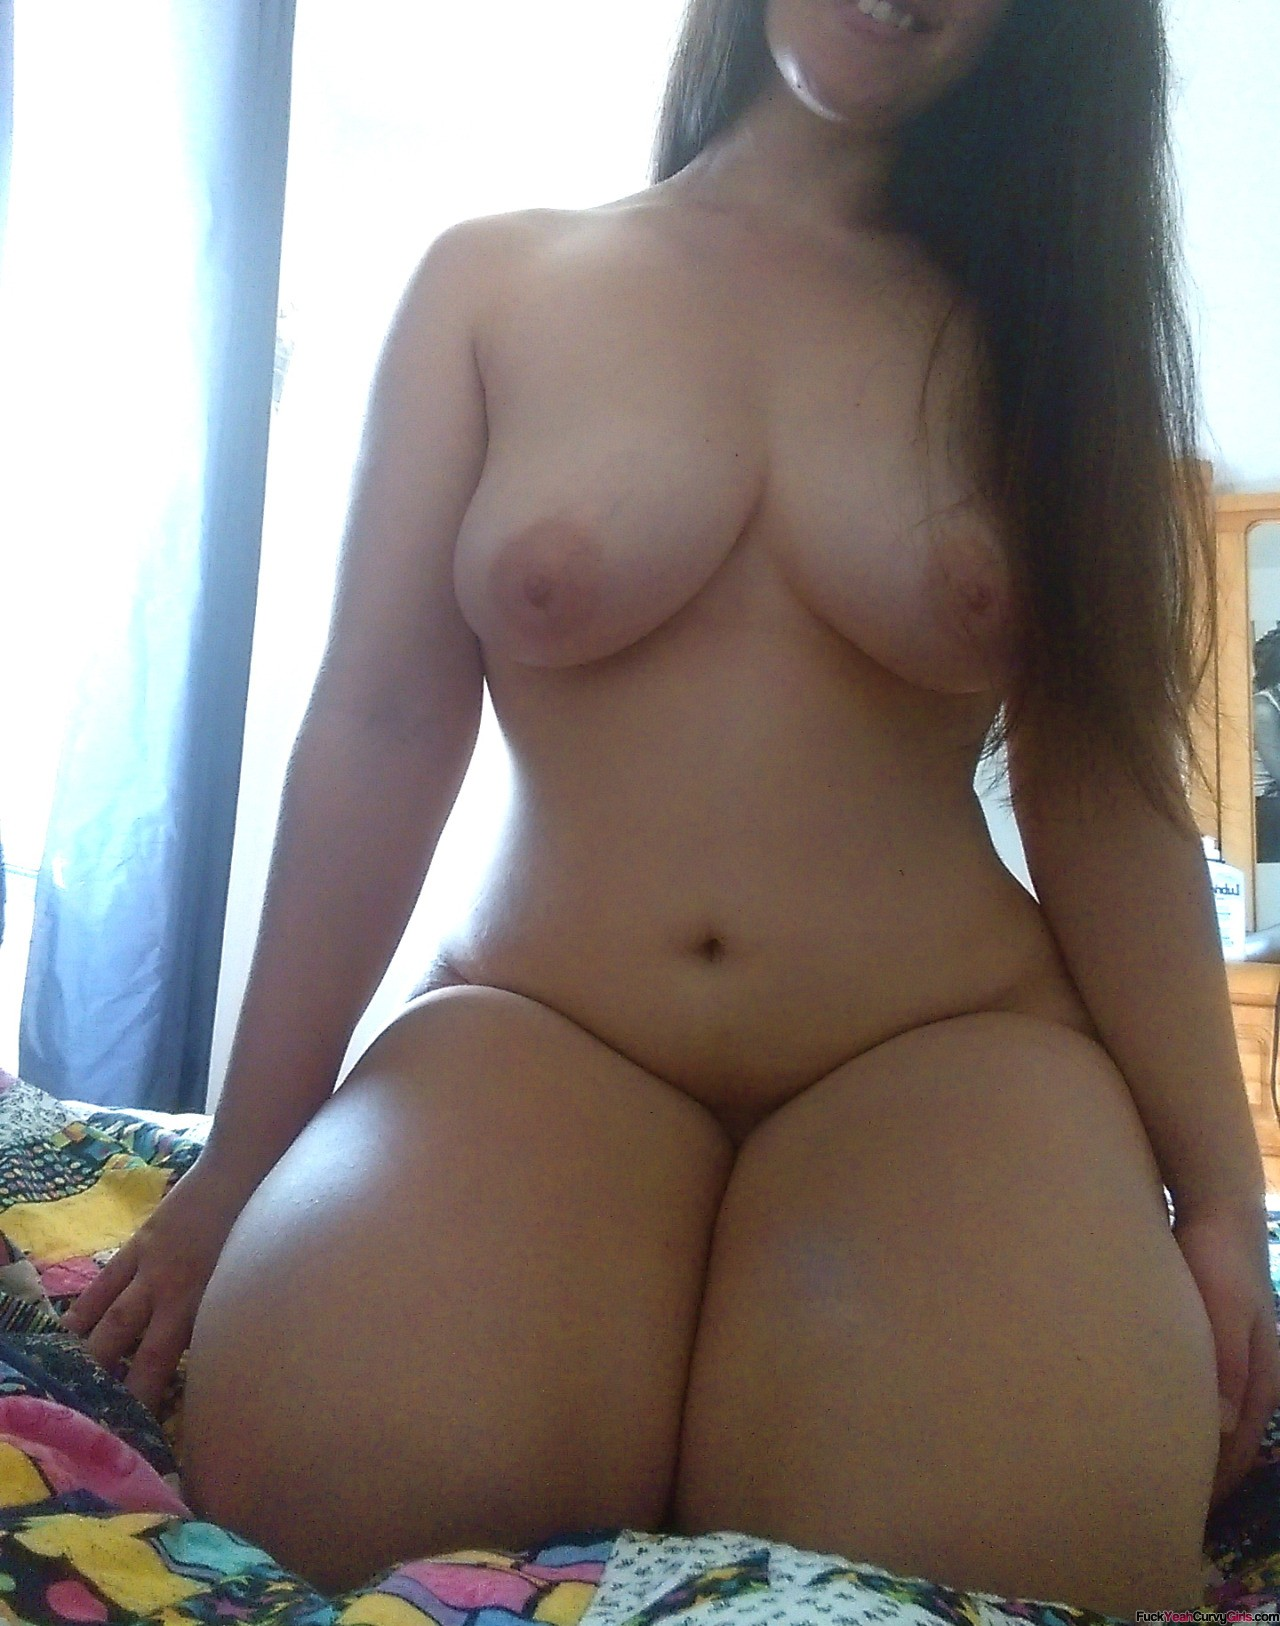 Cute amateur woman think